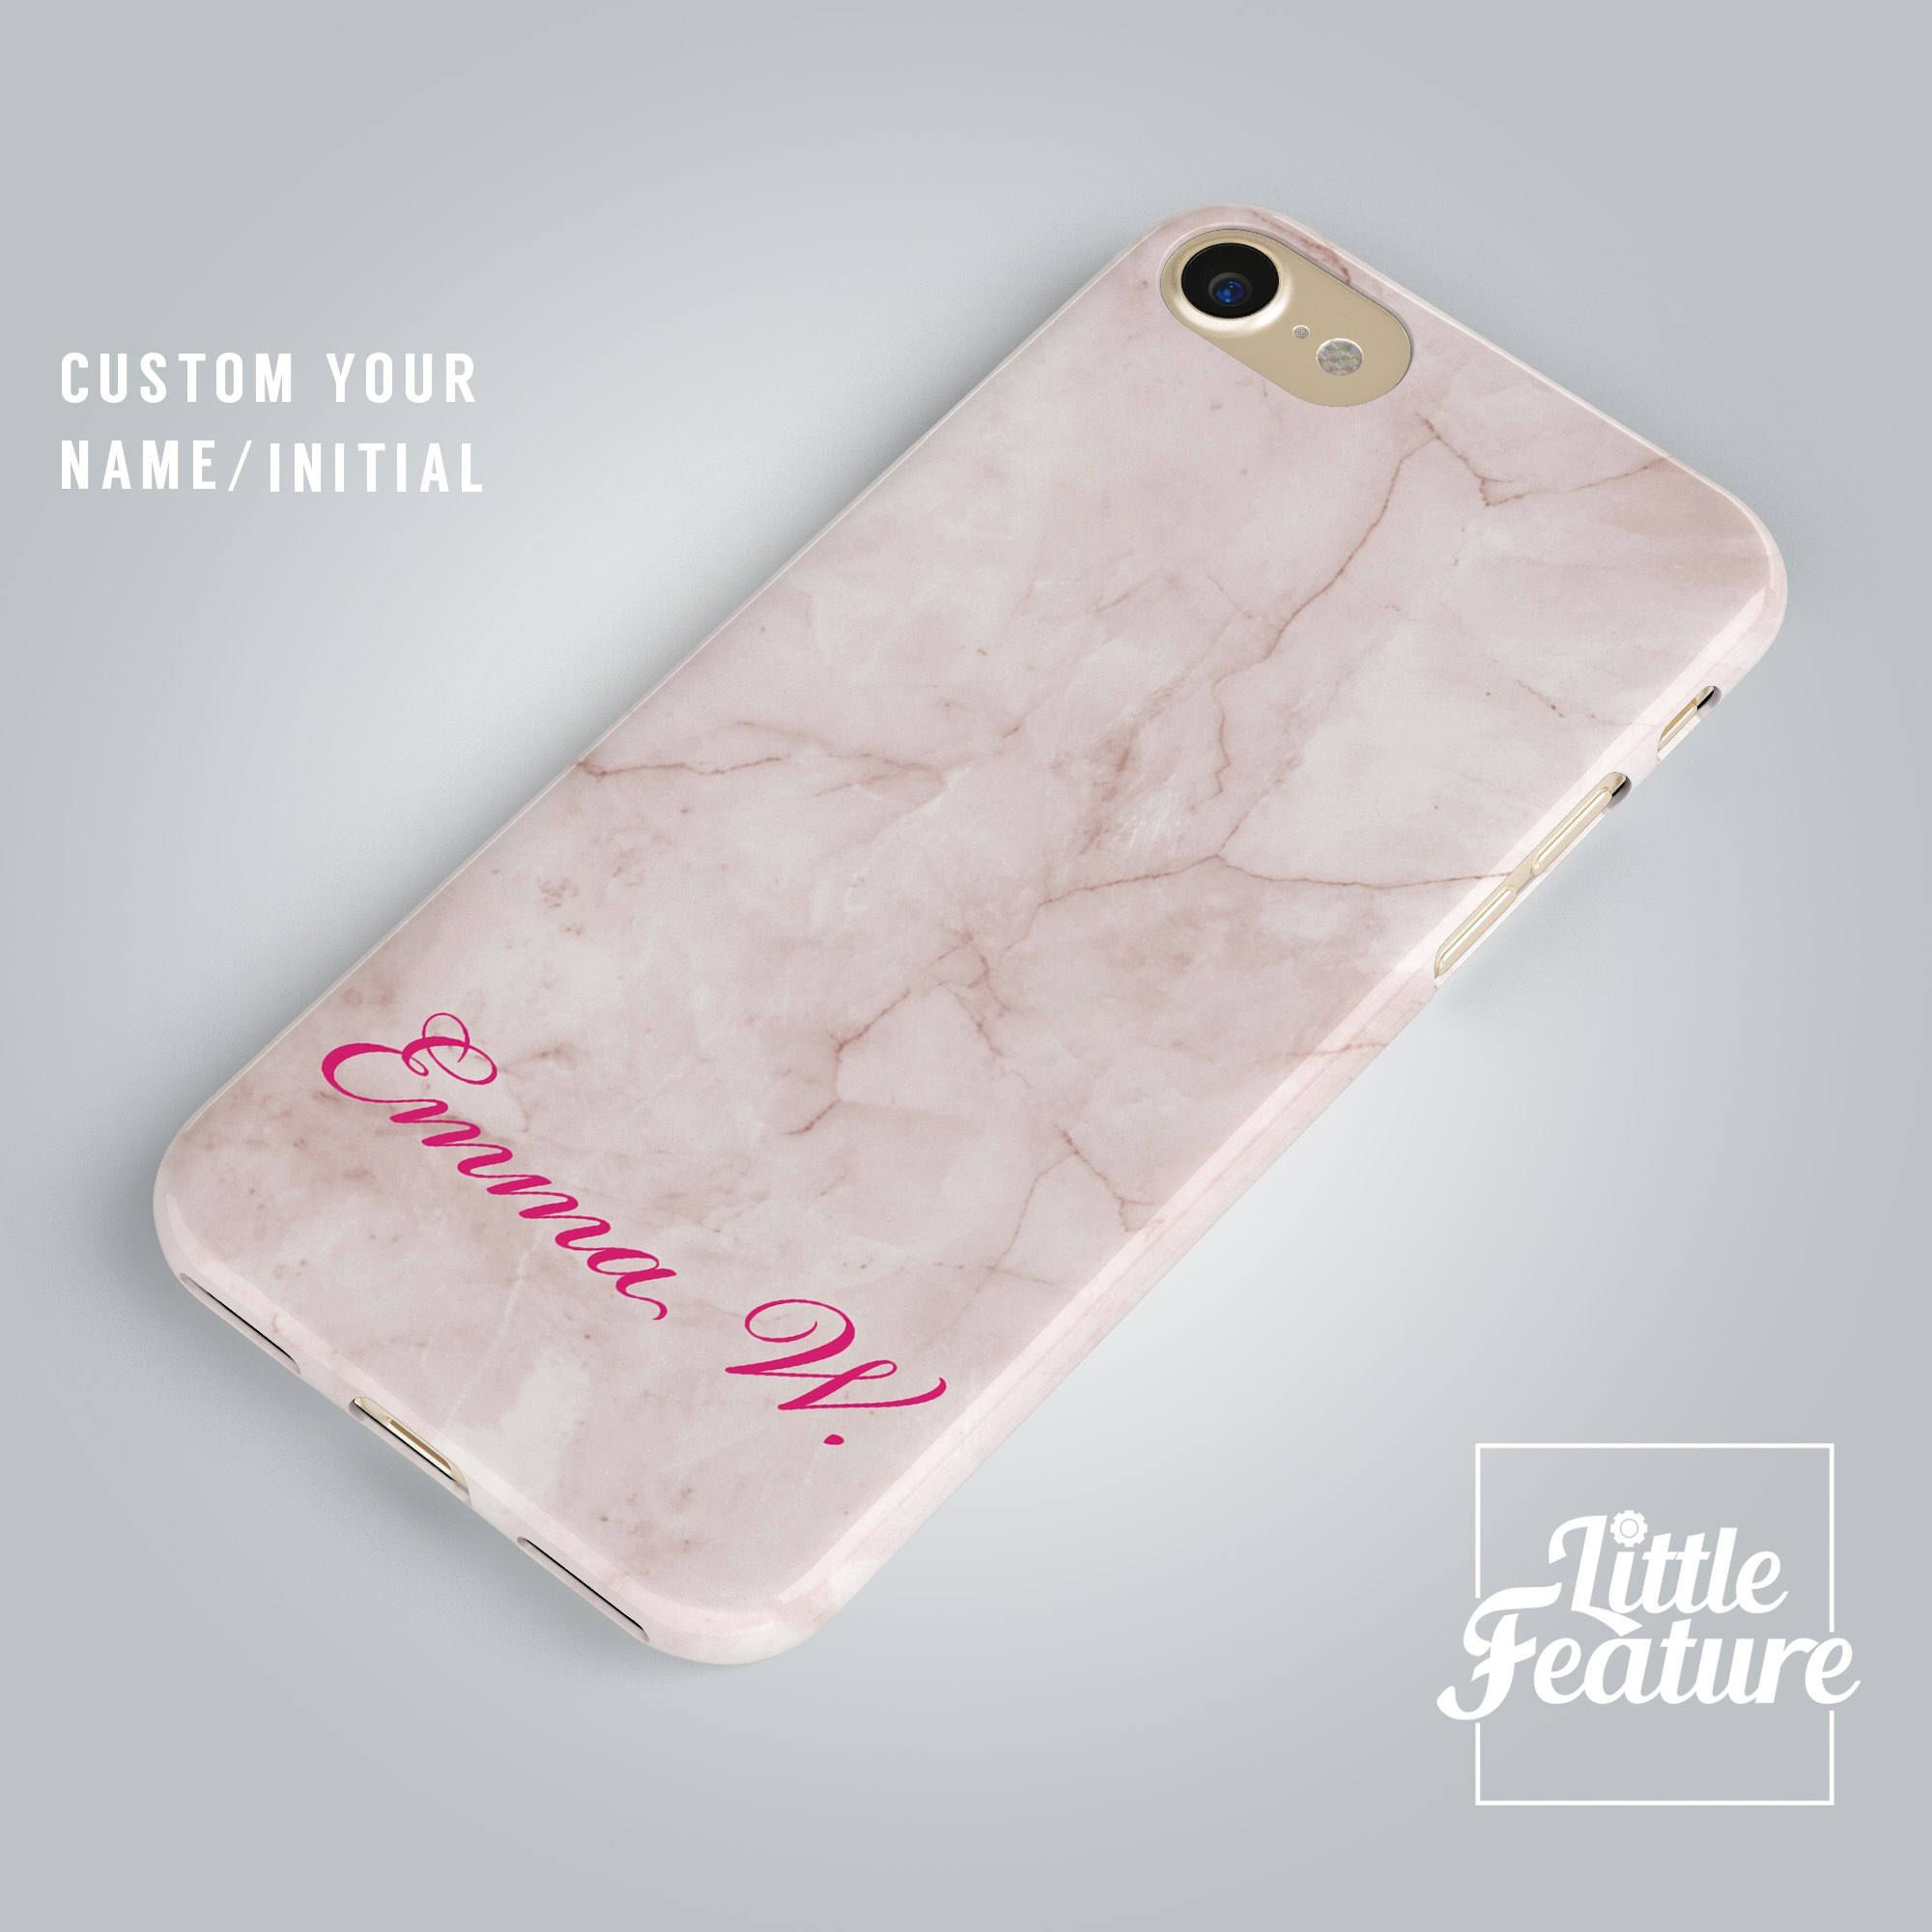 267f20ab62 Excited to share the latest addition to my #etsy shop: Custom Name iPhone X  case, personalised initial iPhone 8 case, Pink Marble iPhone 7 case, Samsung  ...